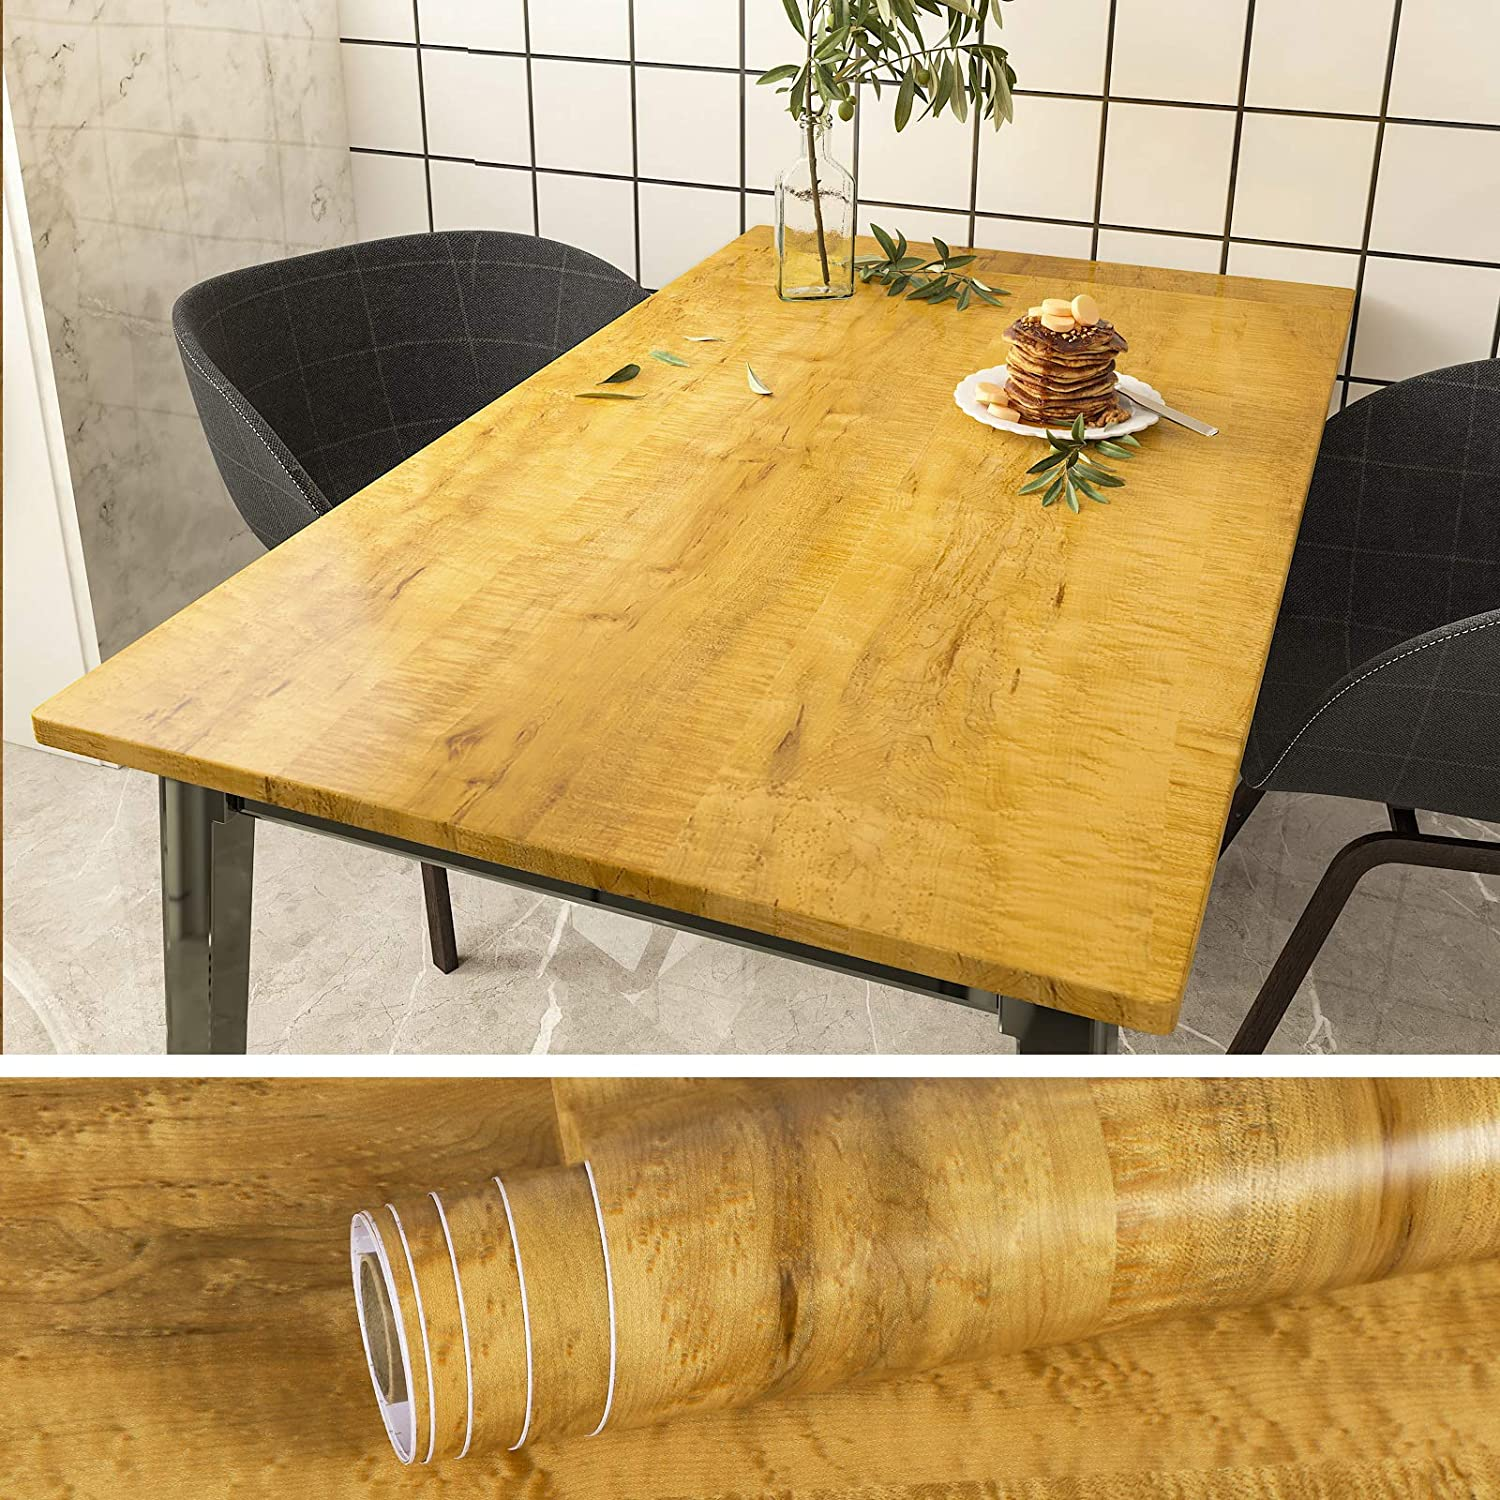 VEELIKE 15.7''x118'' Brown Wood Wallpaper Peel and Stick Waterproof Wood Grain Contact Paper Self Adhesive Removable Wood Look Wallpaper Vinyl Decorative Wall Covering for Cabinets Furniture Bedroom